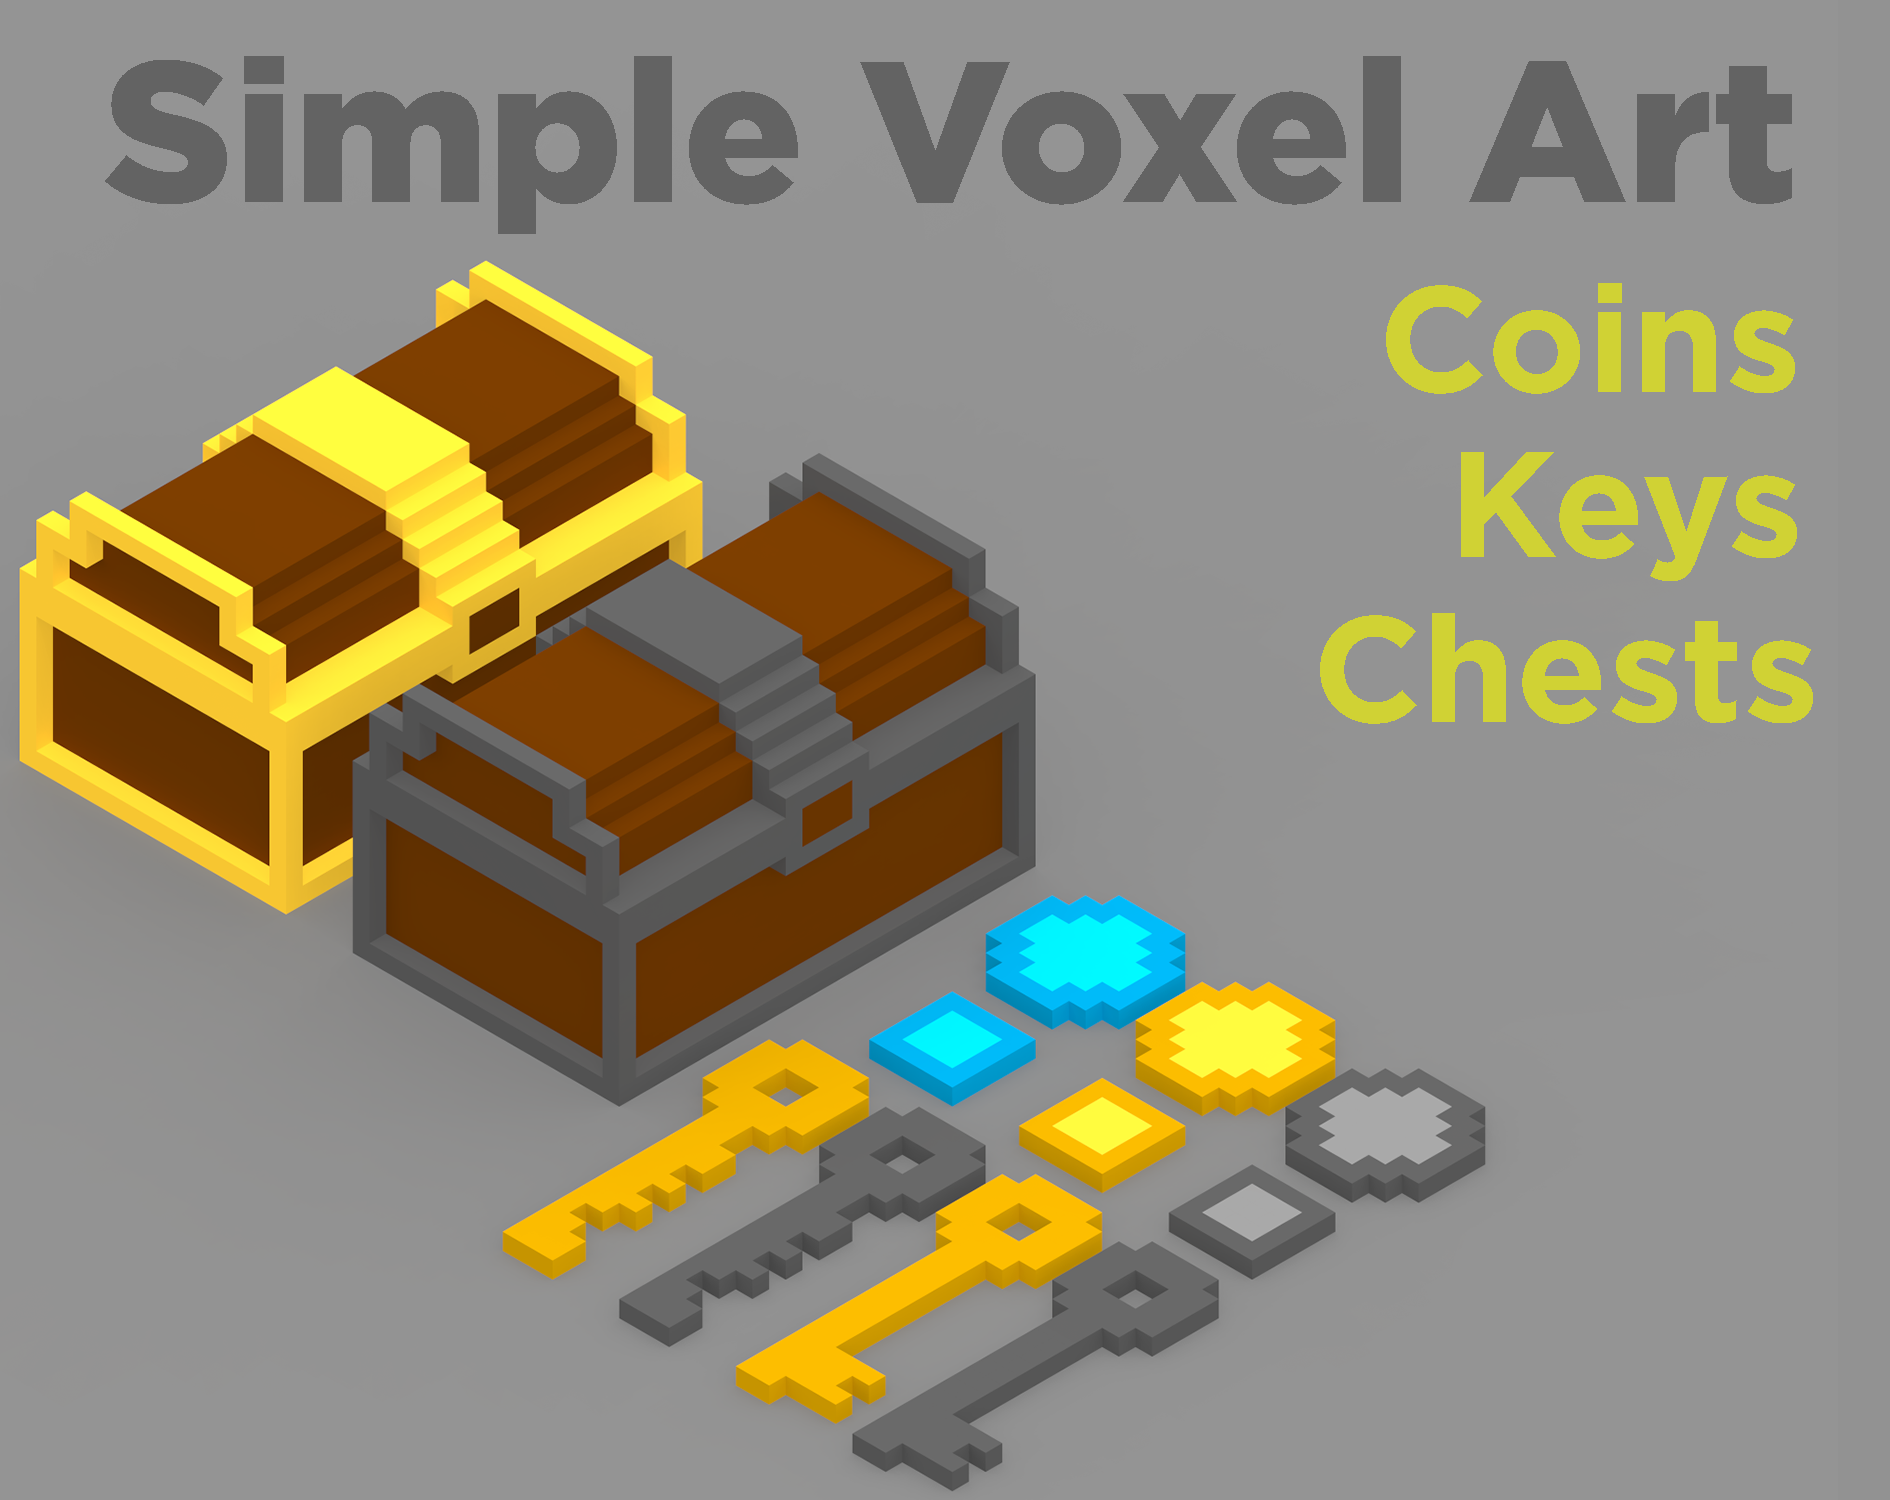 Simple Voxel Art Coins & more